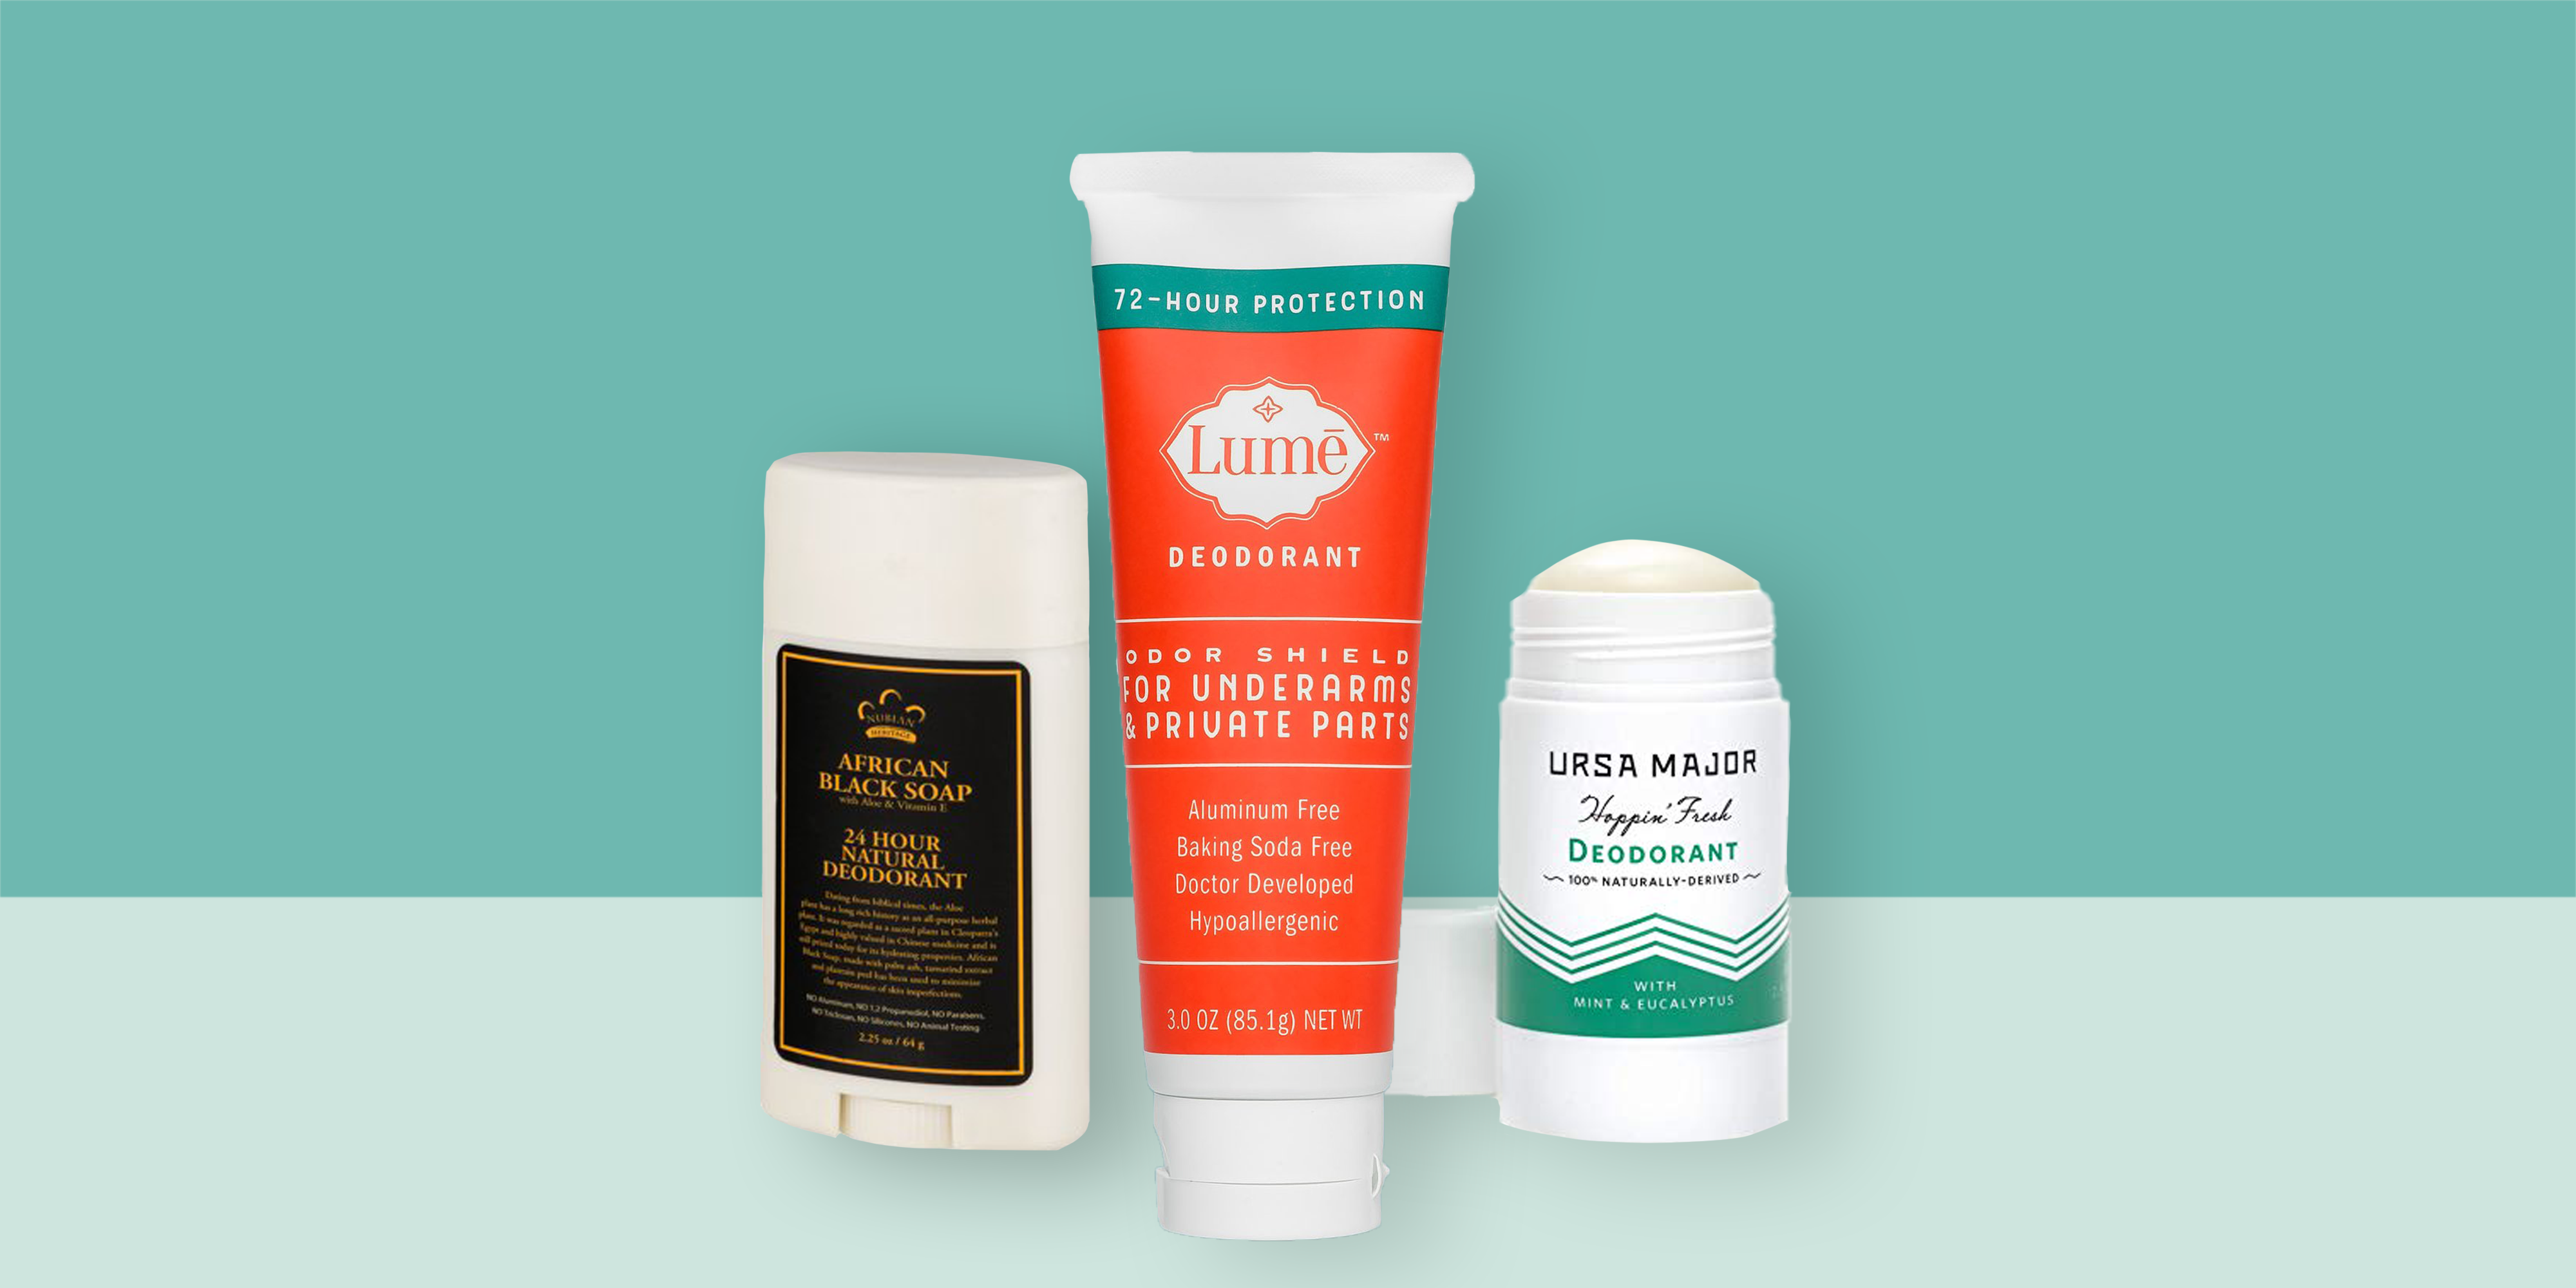 If You Can't Stop Sweating, These Deodorants Will Have Your